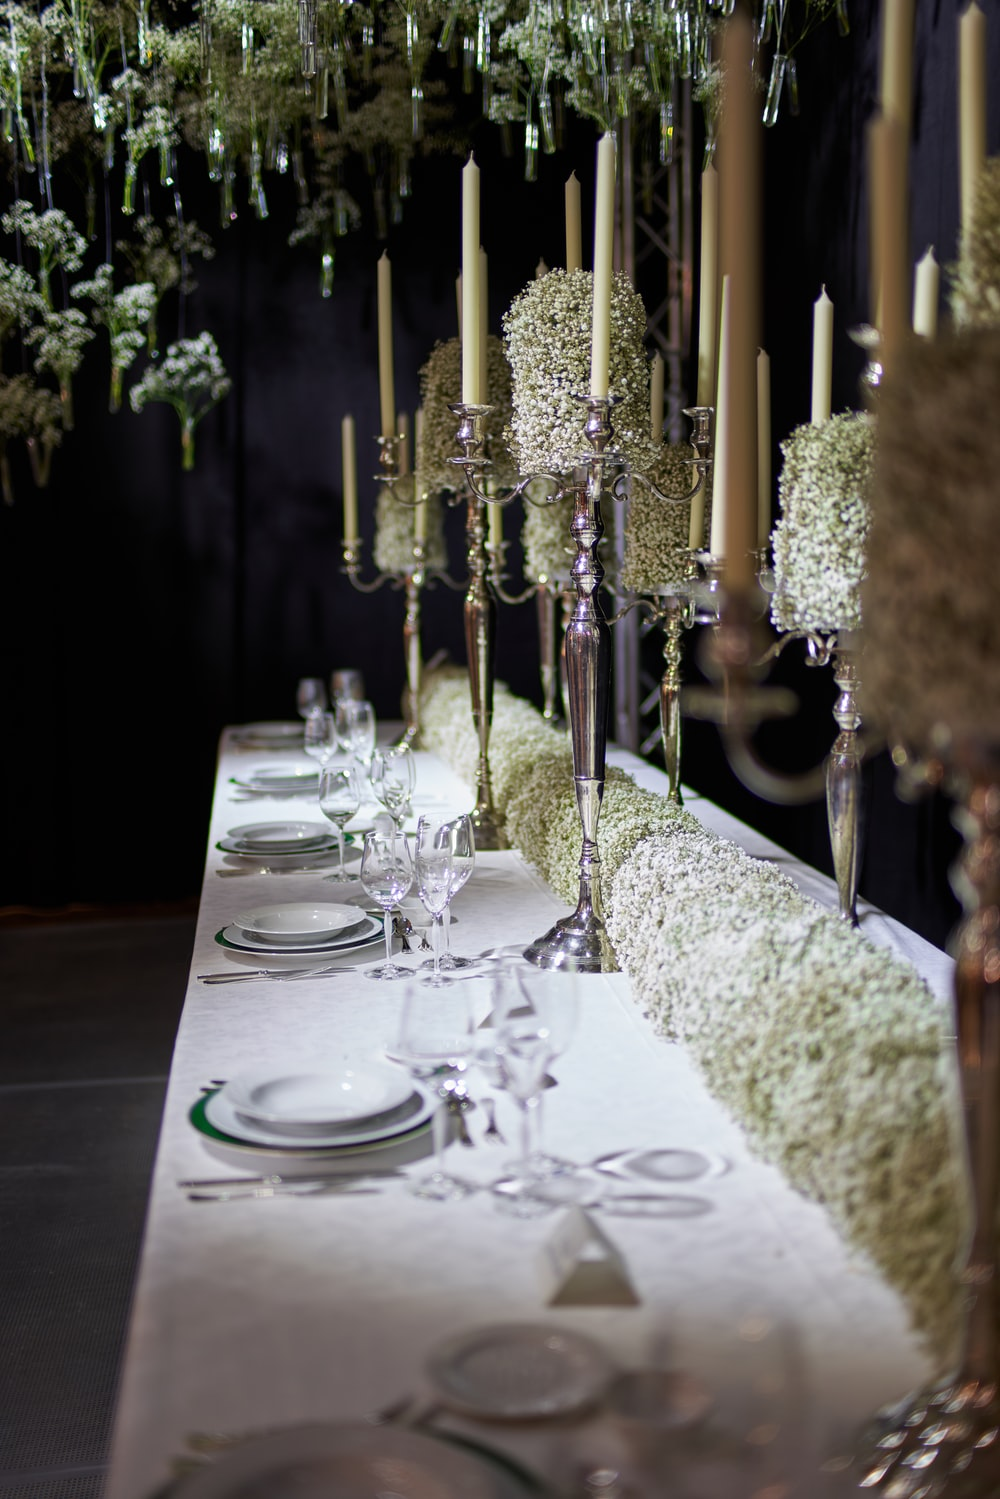 flower centerpieces, candles, and dinnerware set arrangement on table